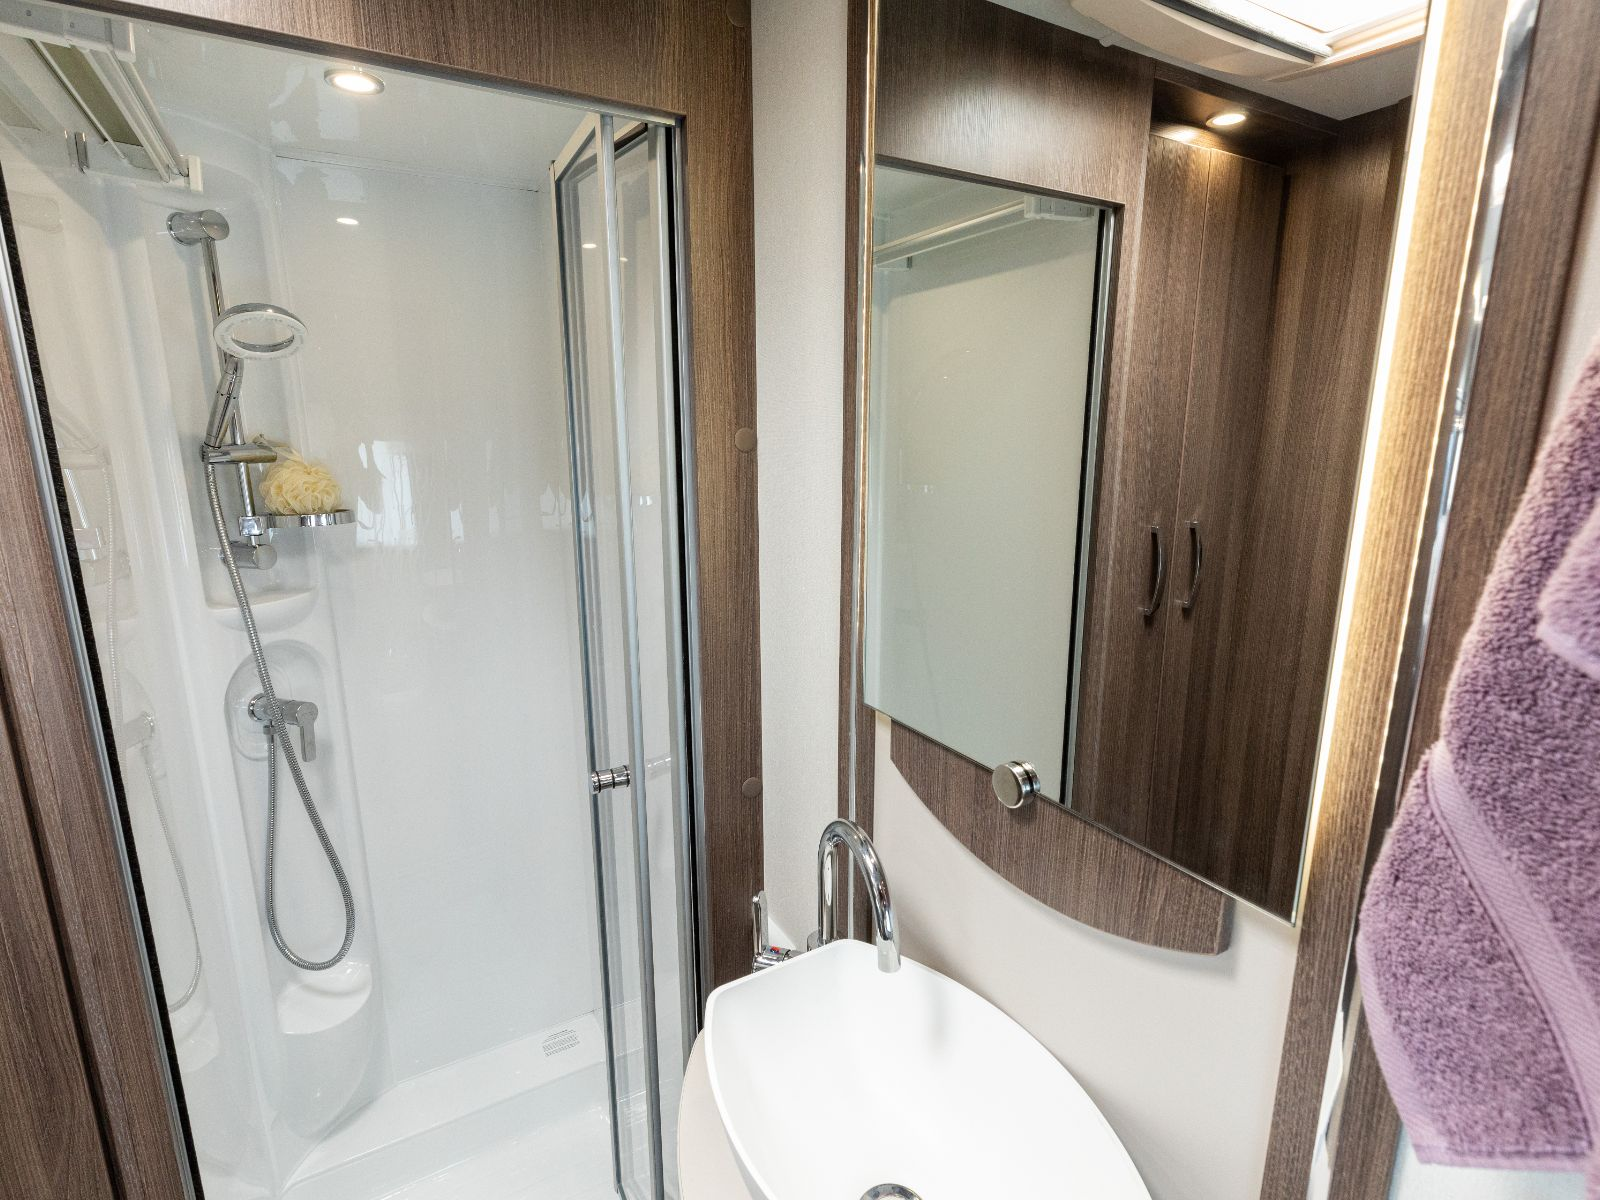 Bathroom layout with sink with mirror above and shower in corner of room'